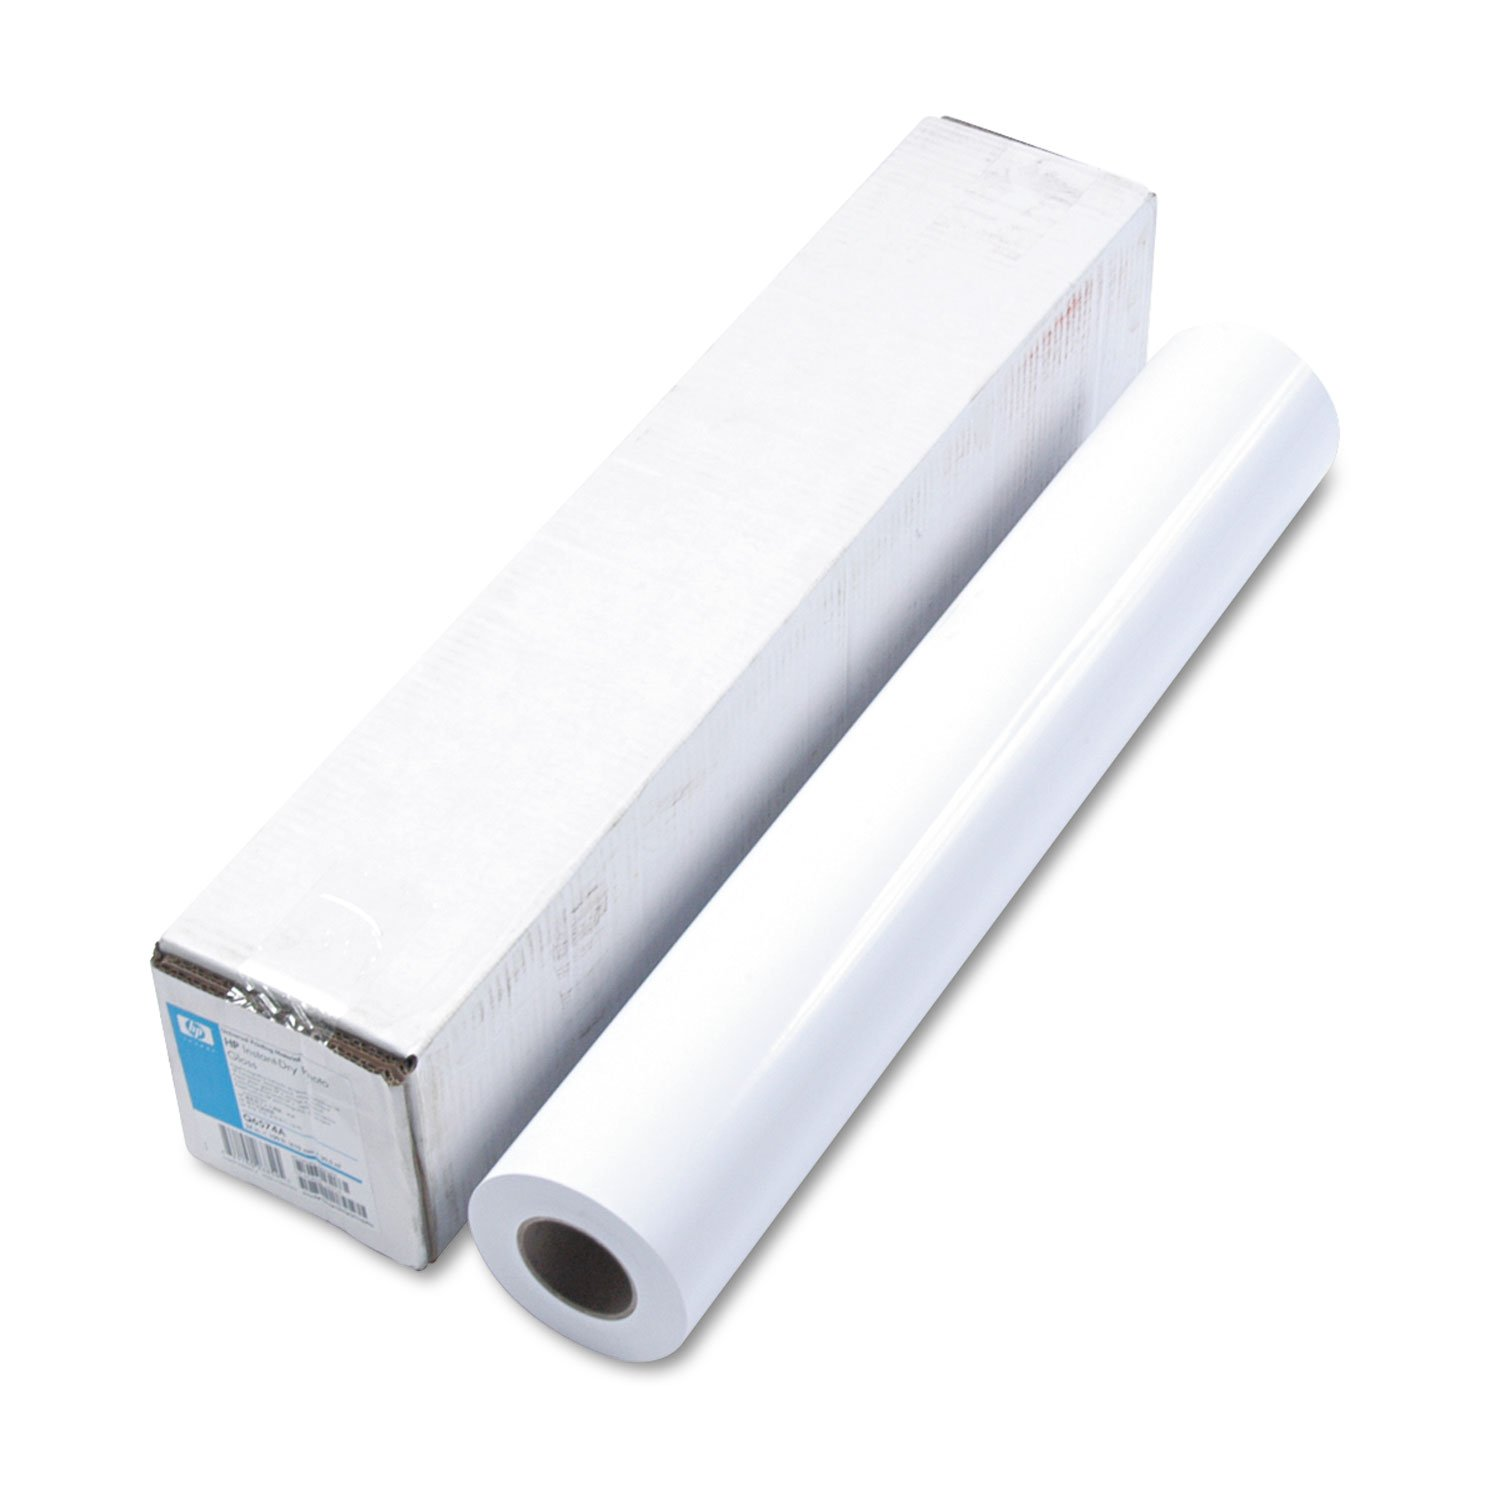 HP Q6574A Universal Instant-Dry Photo Paper, Gloss, 24-Inch x100-Ft, White by HP